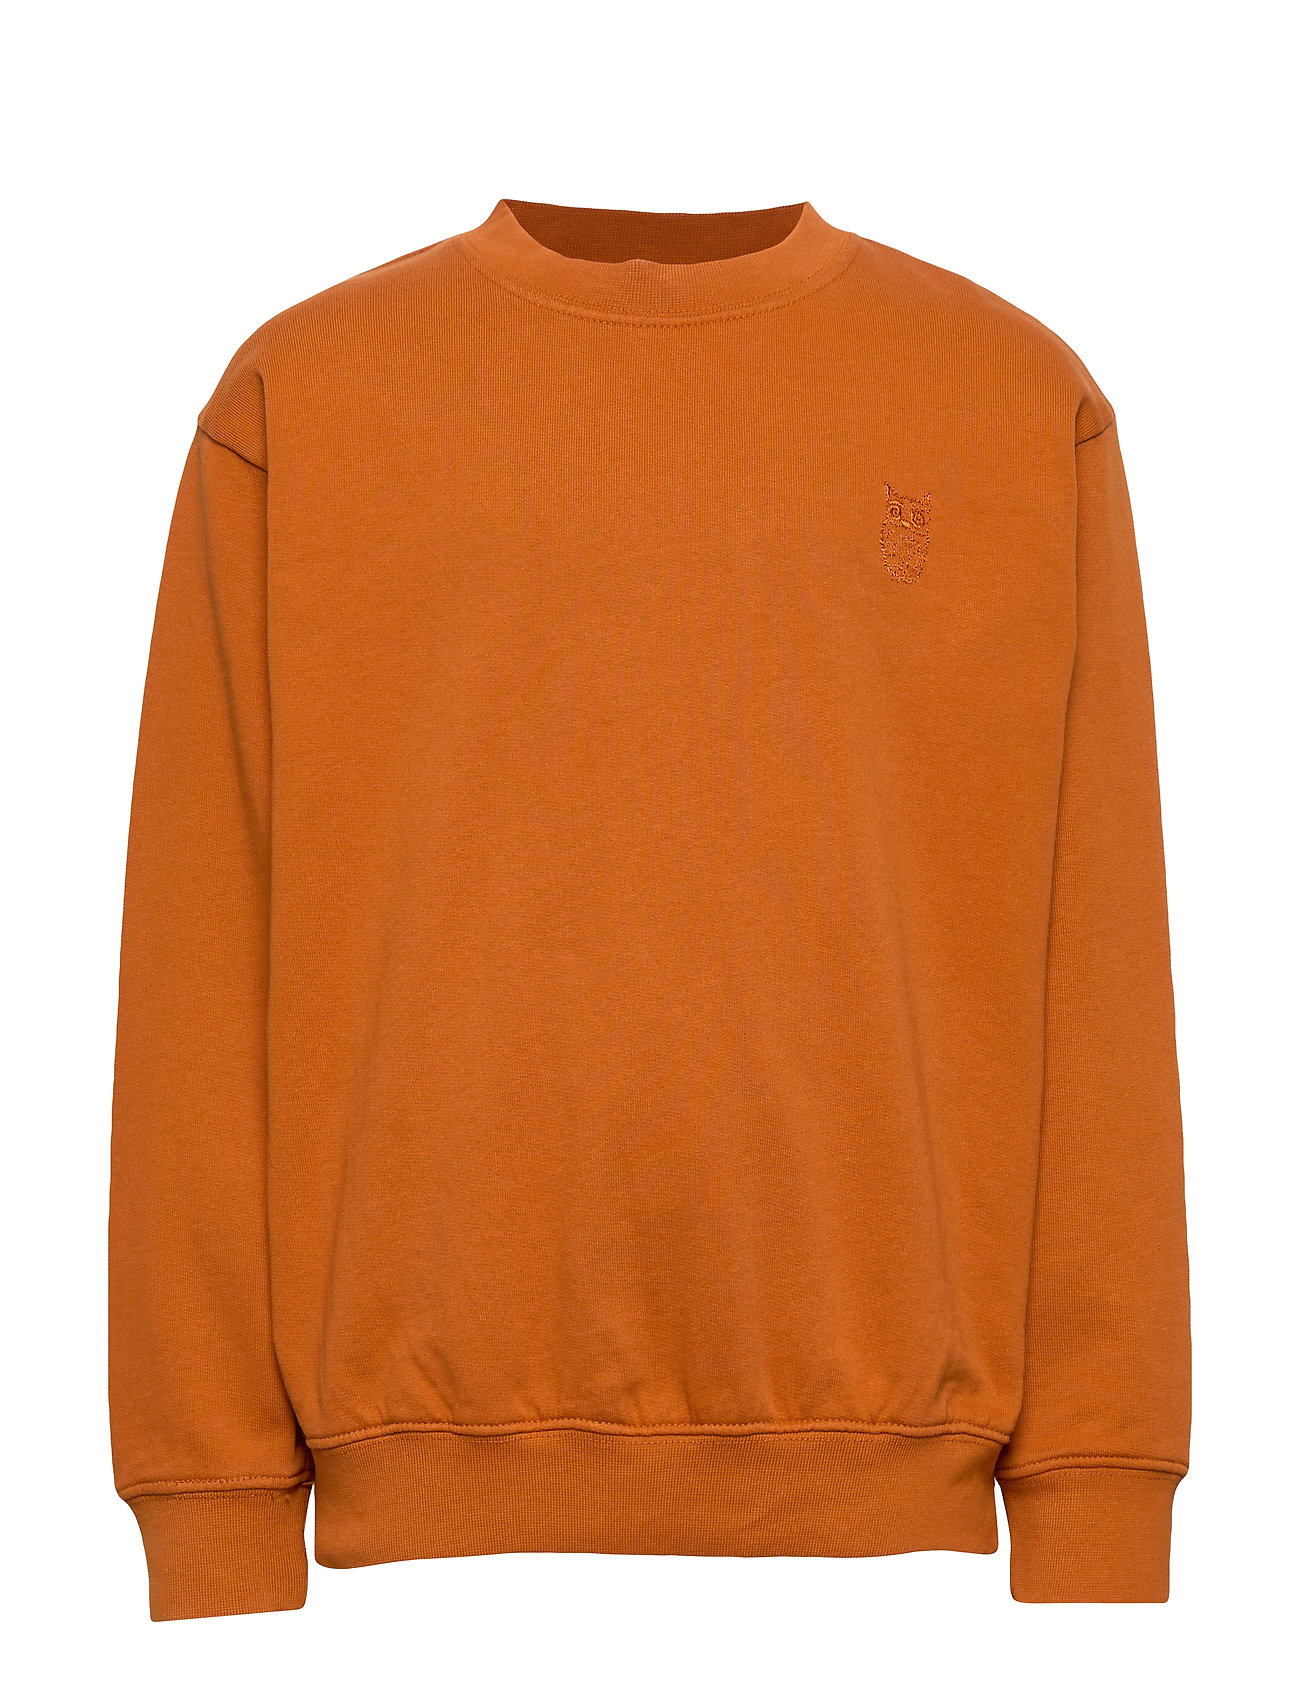 Soft Gallery Walker Sweatshirt - PUMPKIN SPICE, MINI OWL EMB.